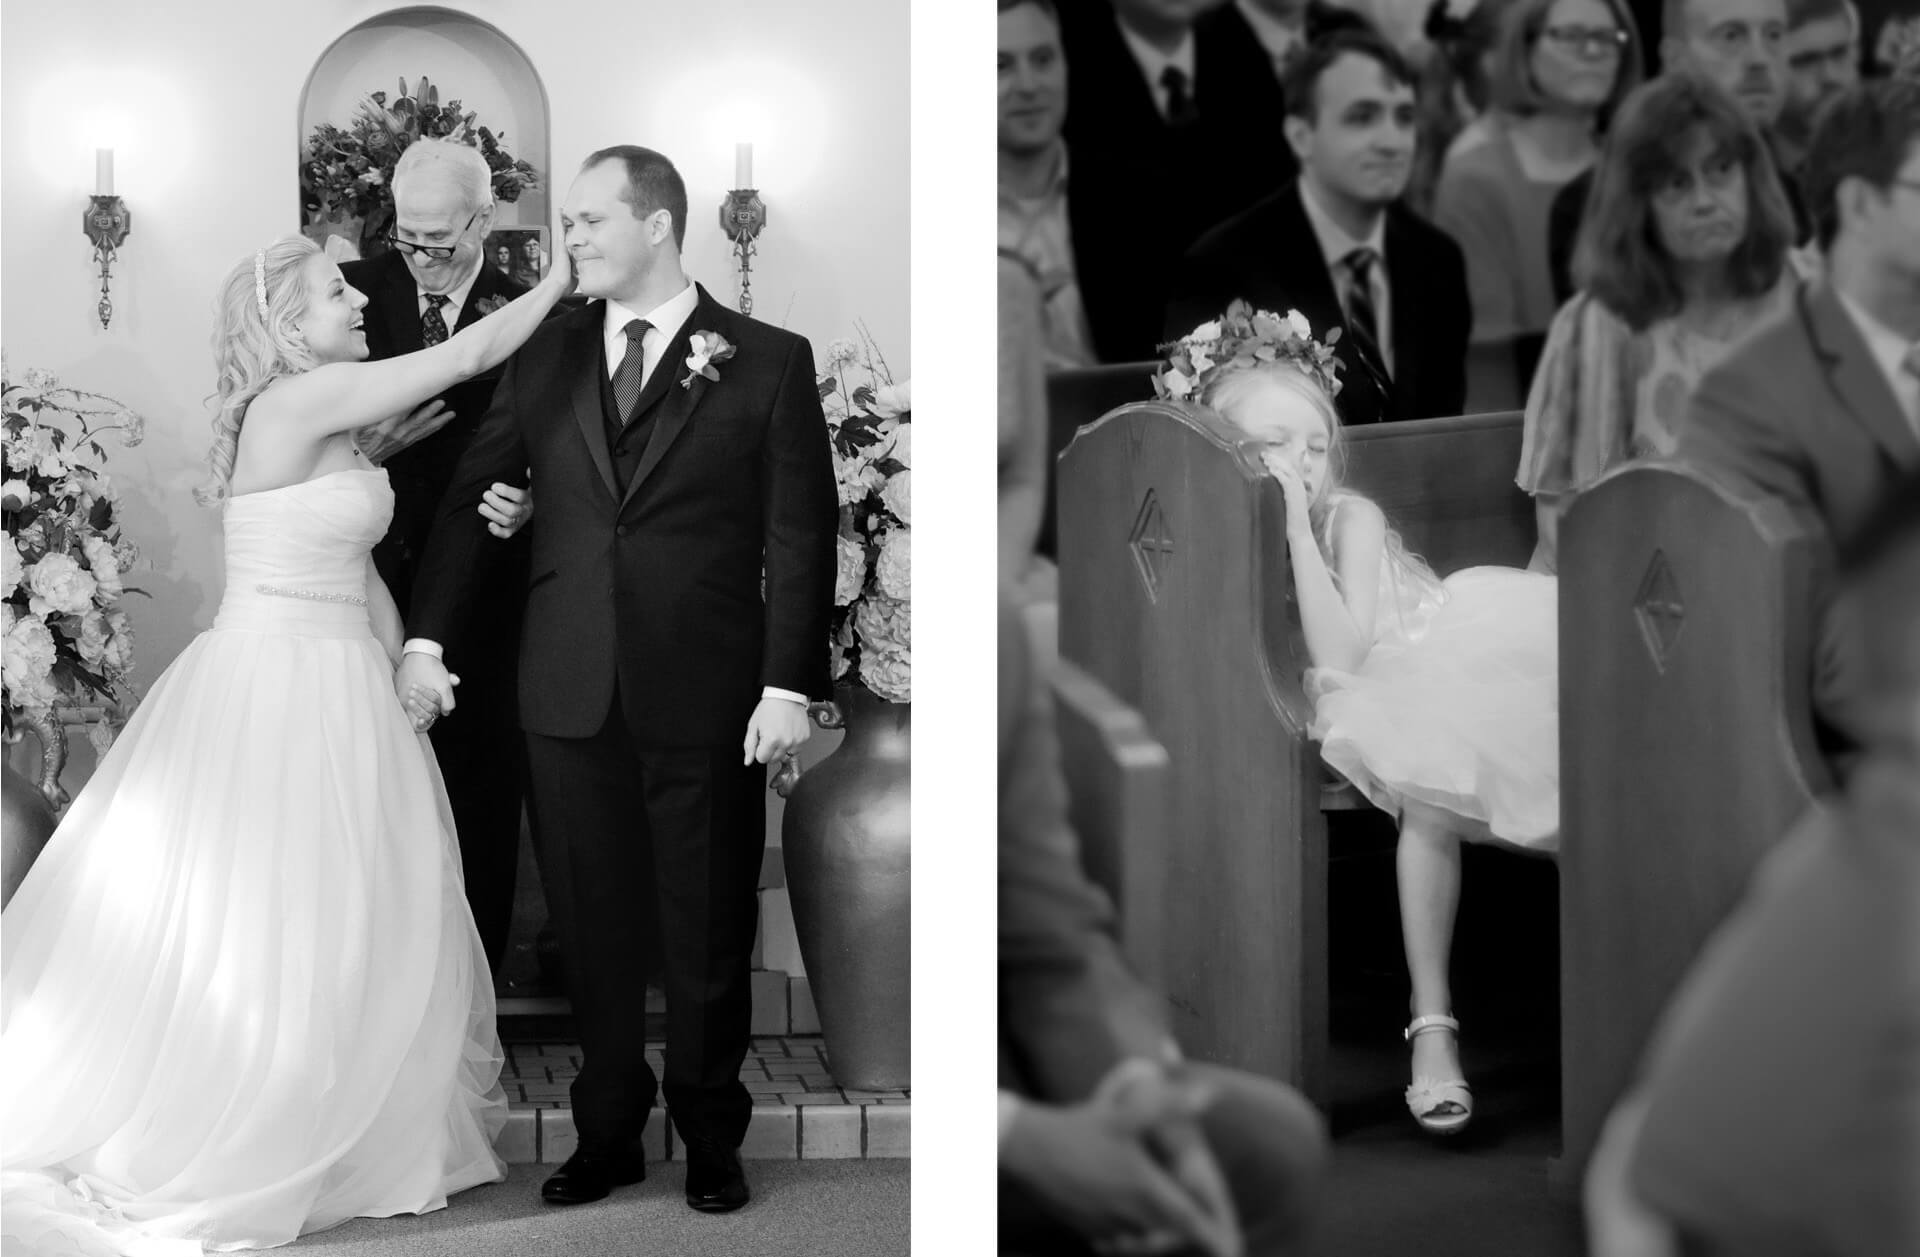 Two photos featuring Michigan wedding day moments like this bride wiping tears off her husband's cheek and a little flower girl sleeping during the ceremony.